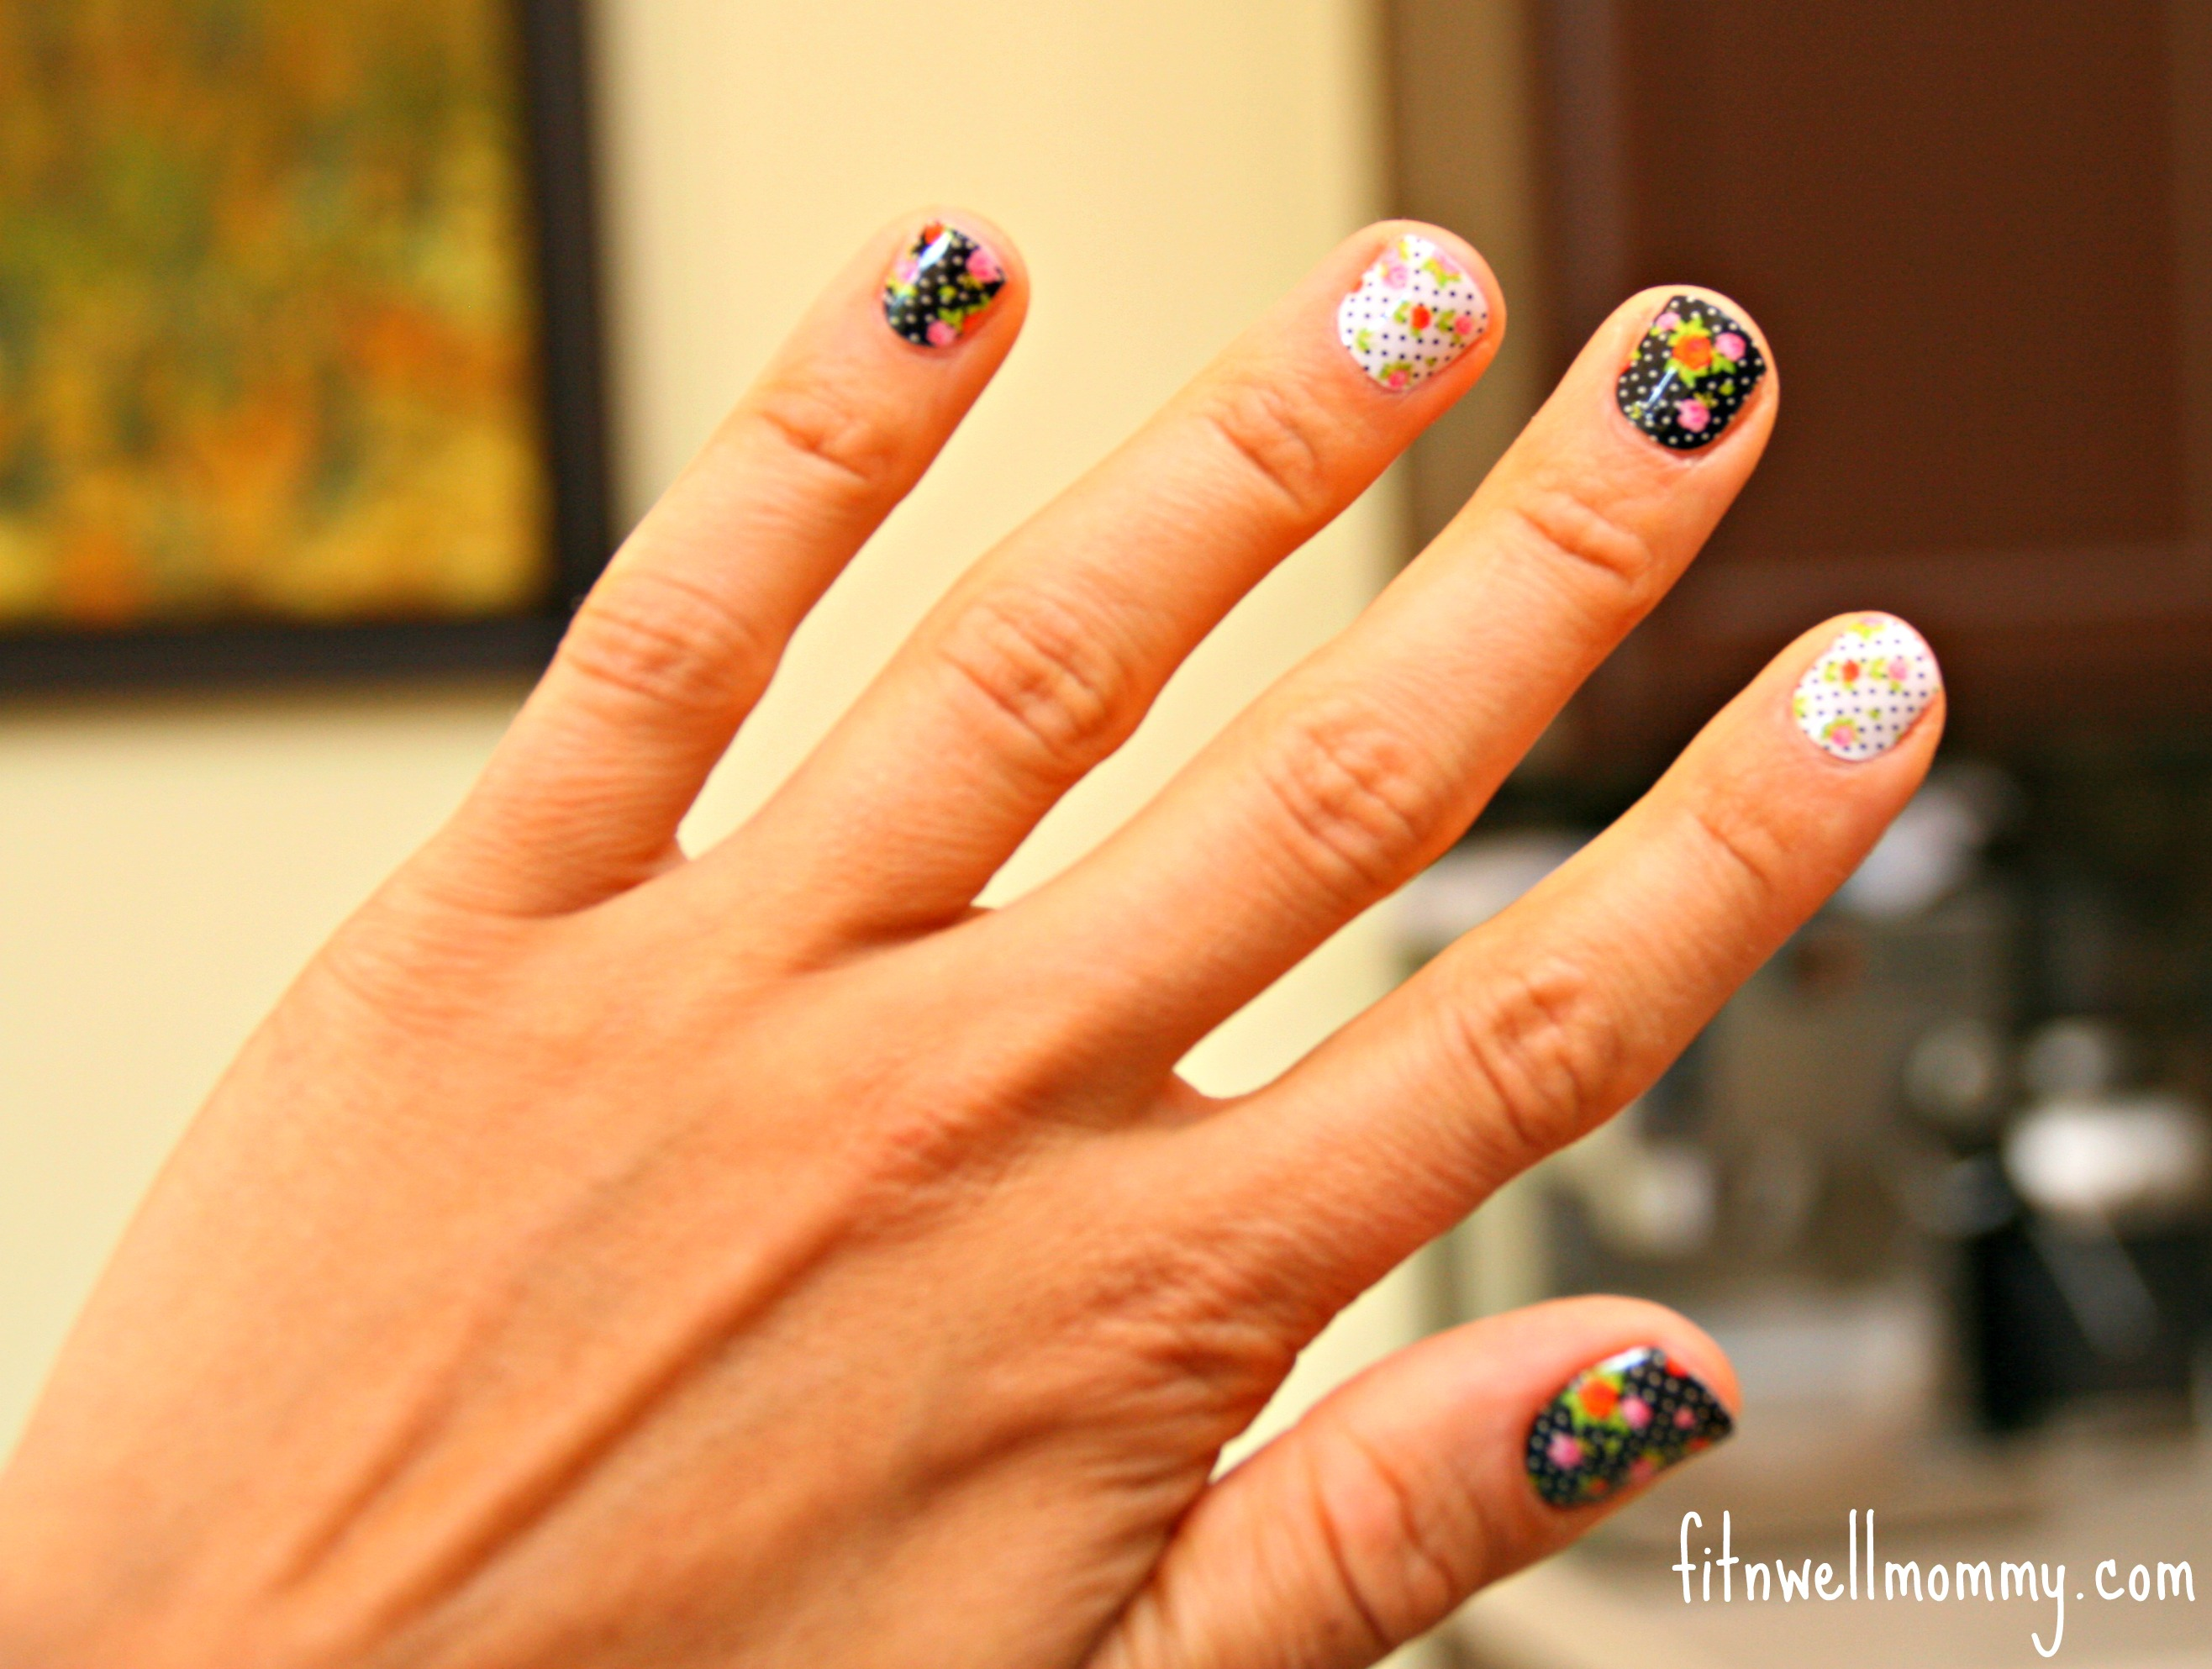 Jamberry Nails Review and Giveaway! - Deliciously Fit